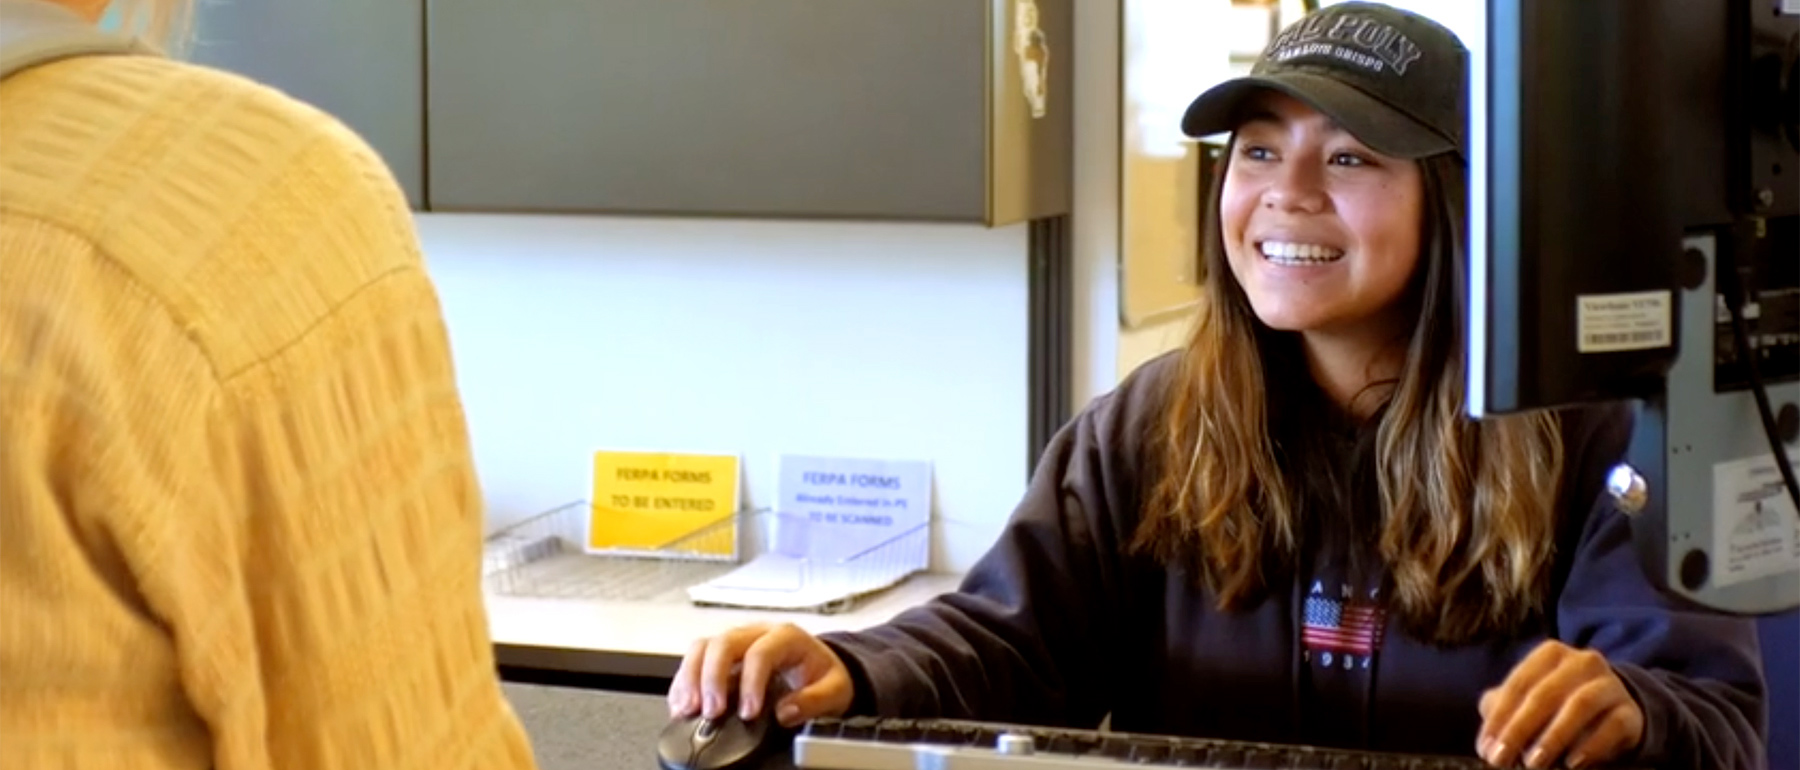 Student at the counter smiling